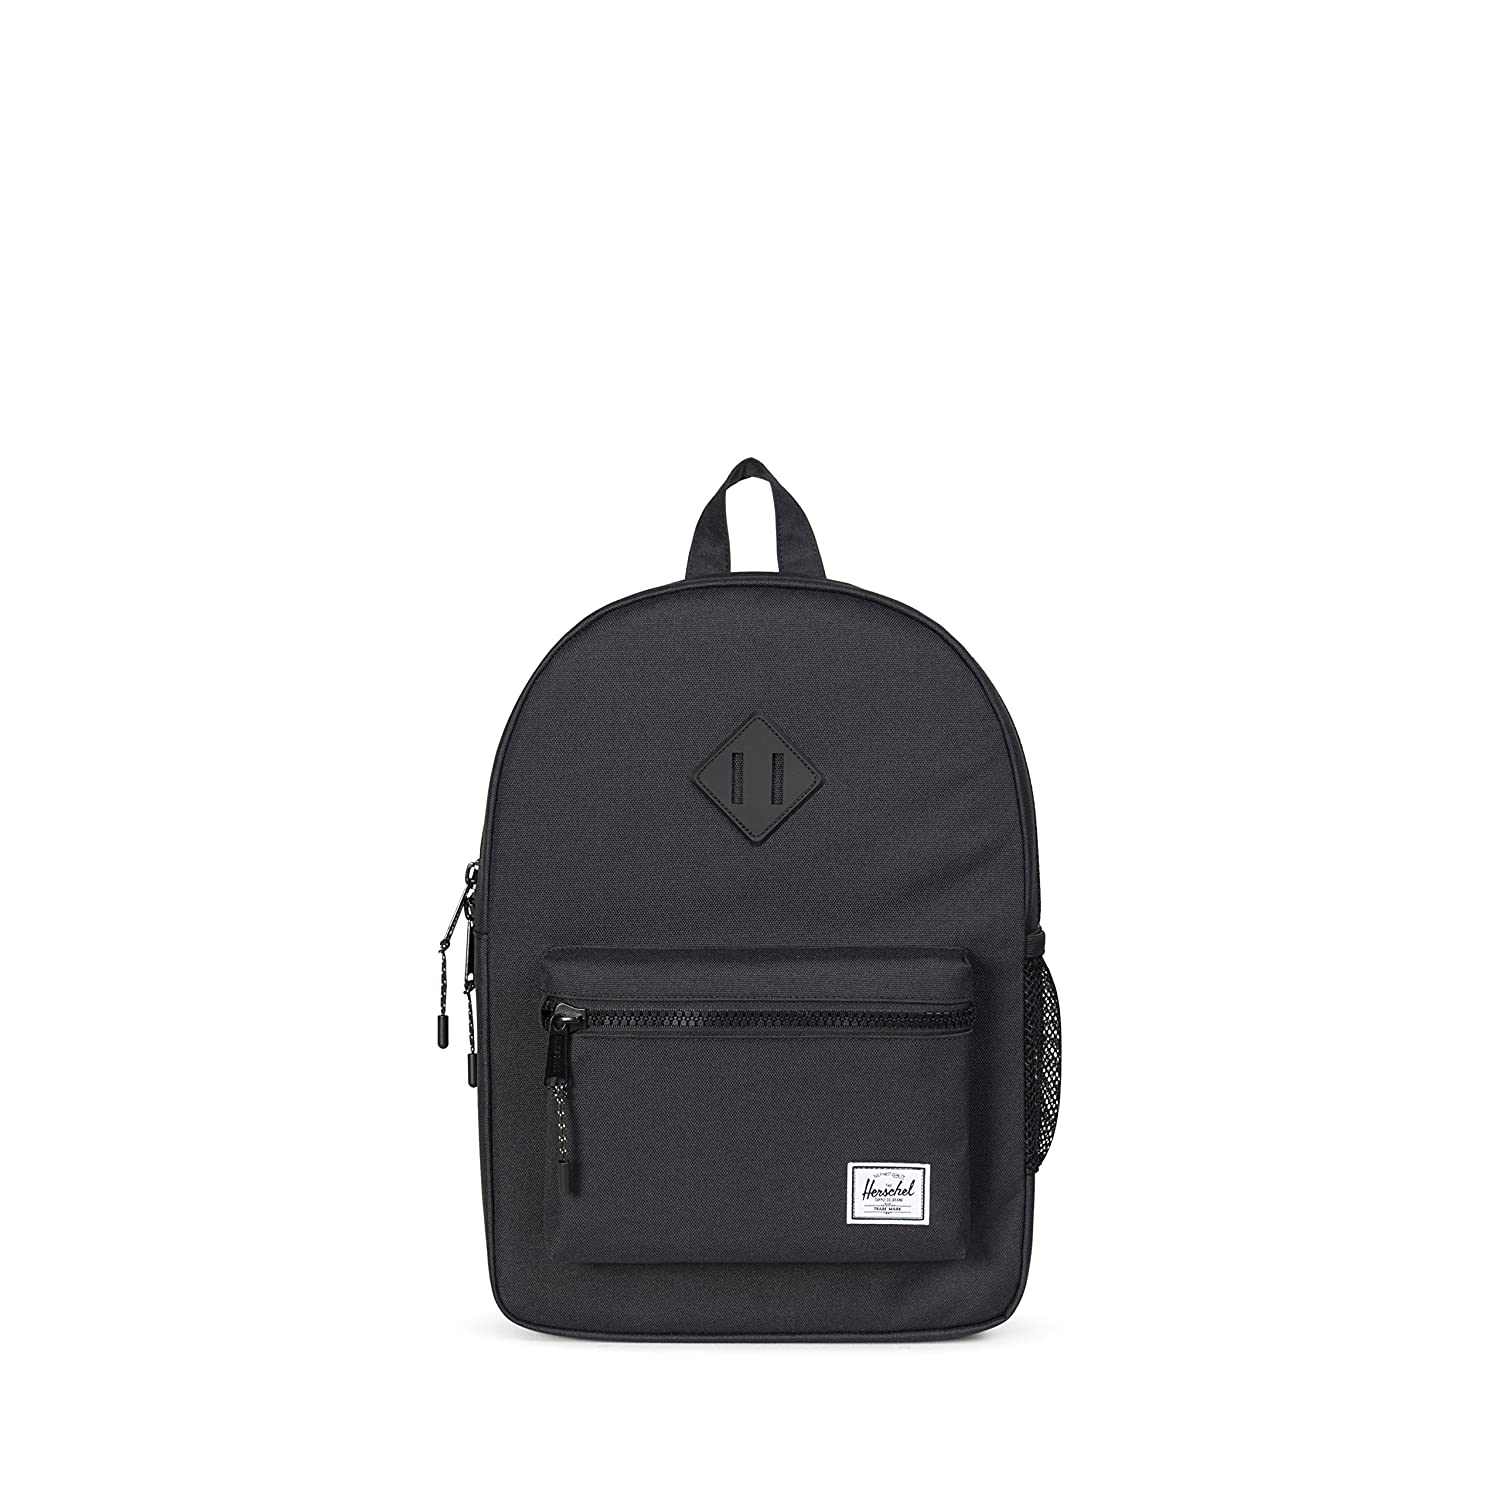 Herschel Supply Co. Kids' Heritage Youth Backpack Black BLK One Size